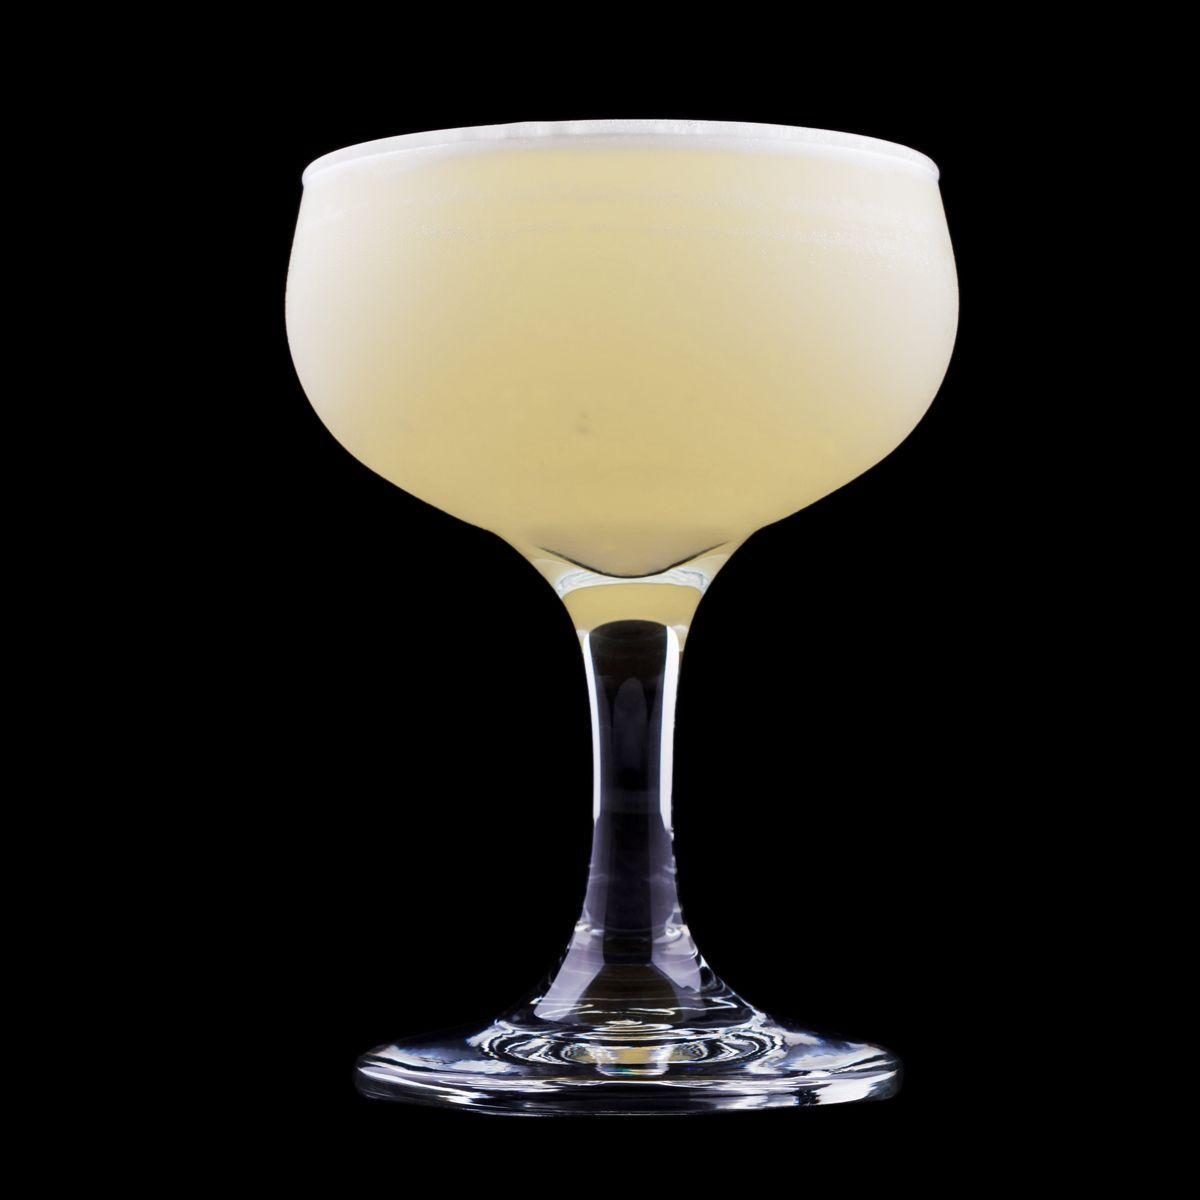 The White Lady is a classic cocktail that is made with gin, orange liqueur, fresh lemon juice, and optional egg white. It's in the sidecar family, made with gin instead of brandy. It was invented by world famous bartender Harry MacElhone in 1919, while he was working at London's Ciro's Club. It originally featured crème de menthe, triple sec, and lemon, but MacElhone revised his recipe in 1929, when he was tending bar at his own establishment, Harry's New York Bar in Paris. That new method called for gin, orange liqueur, lemon juice, and egg white, yielding a drier, more balanced version than the original.